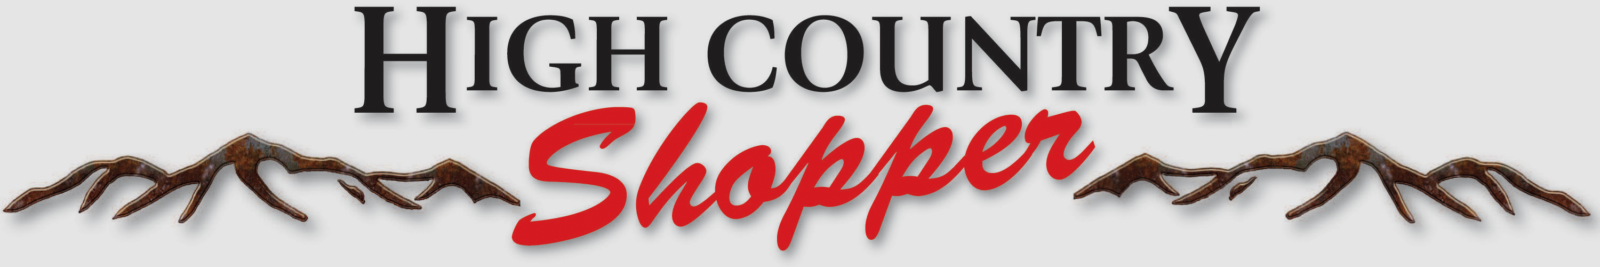 High Country Shopper